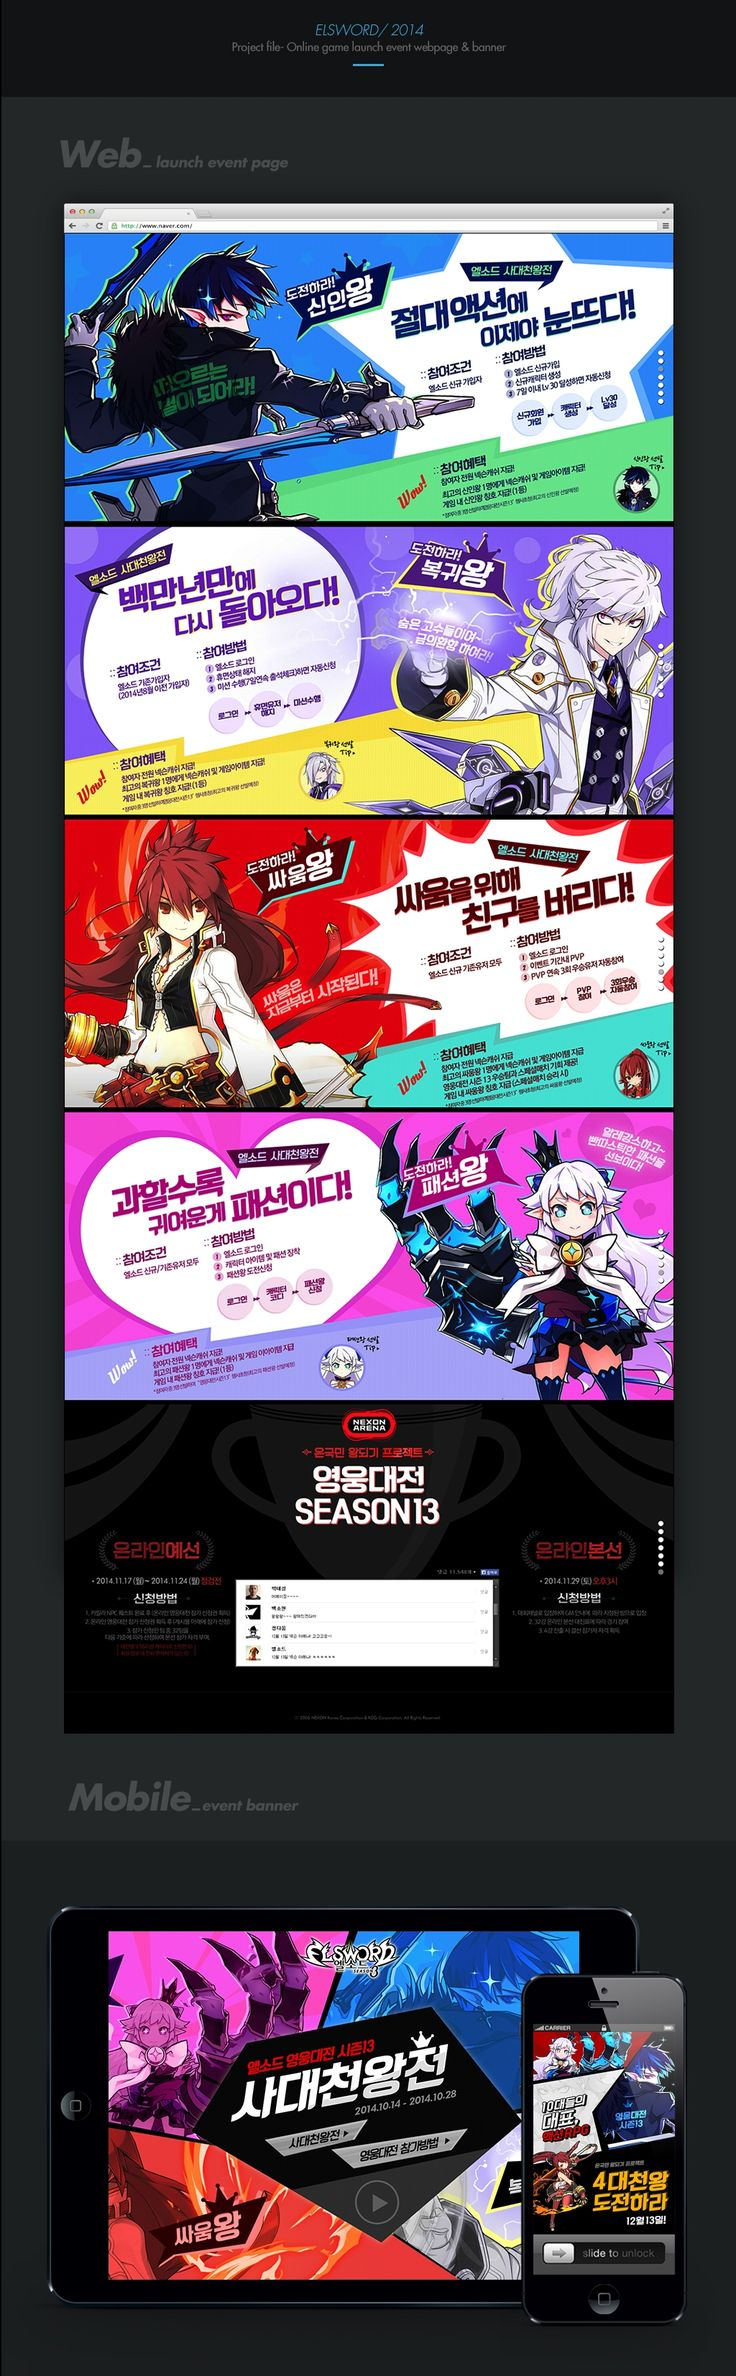 Elsword/2014  Project file_Mobile game launch event poster& banner